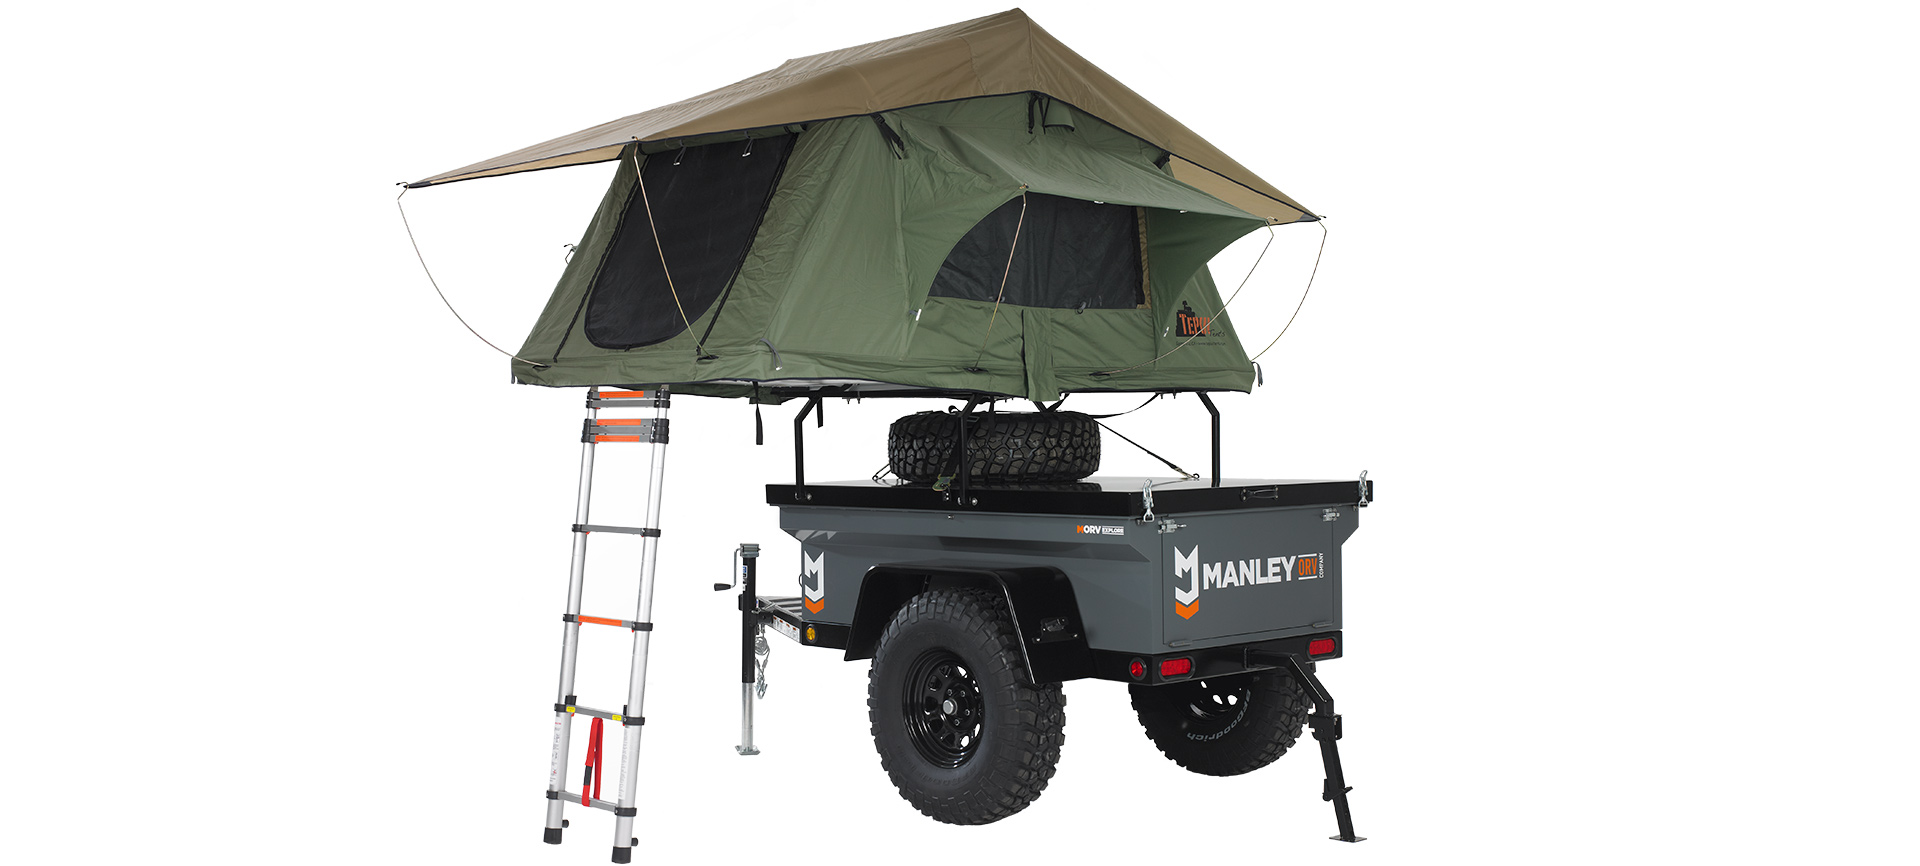 Outdoor Anhänger Manley Orv Company Rugged Reliable Ready